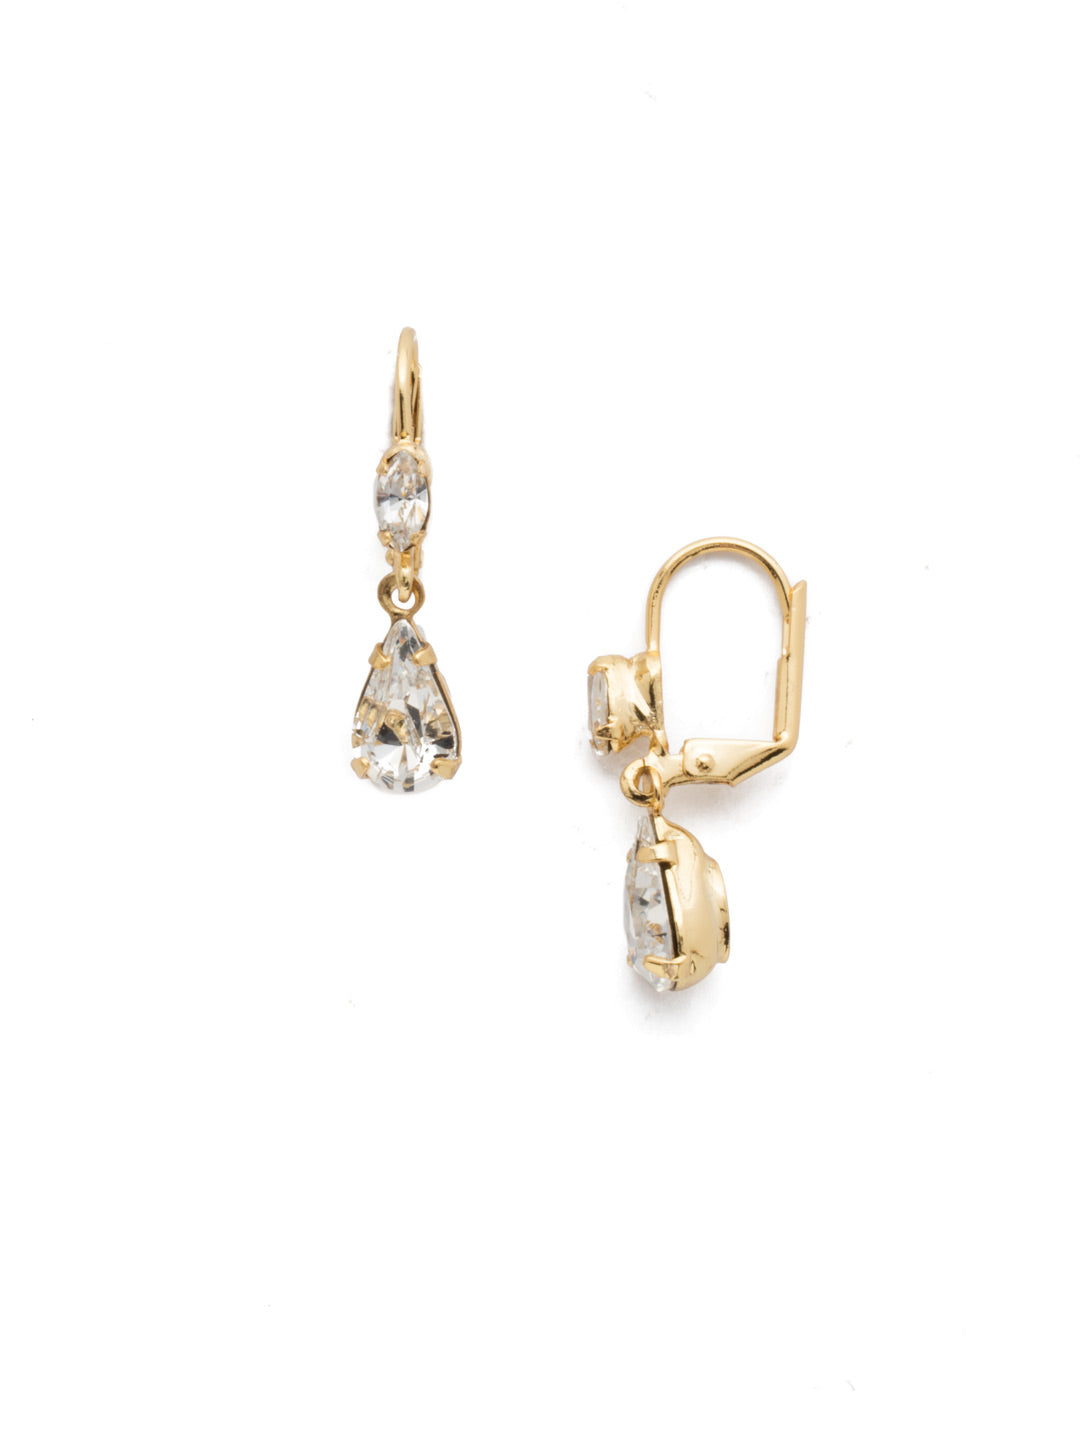 Teardrop Dangle Earrings - EBF20BGCRY